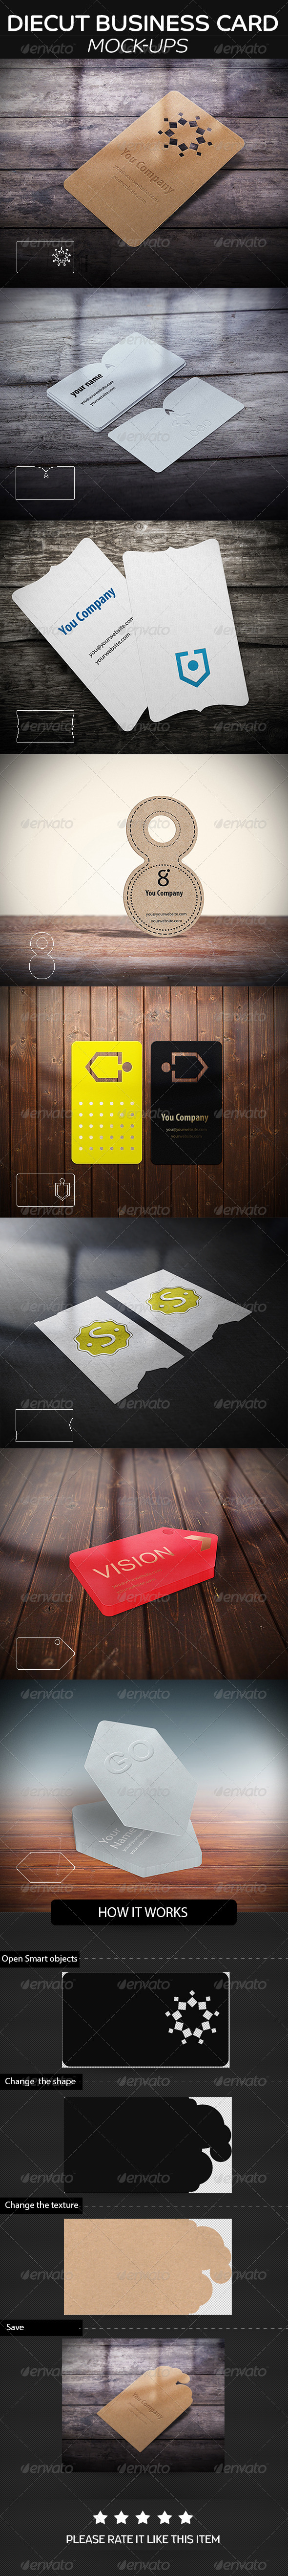 Die Cut Business Cards Ontario Images - Card Design And Card Template